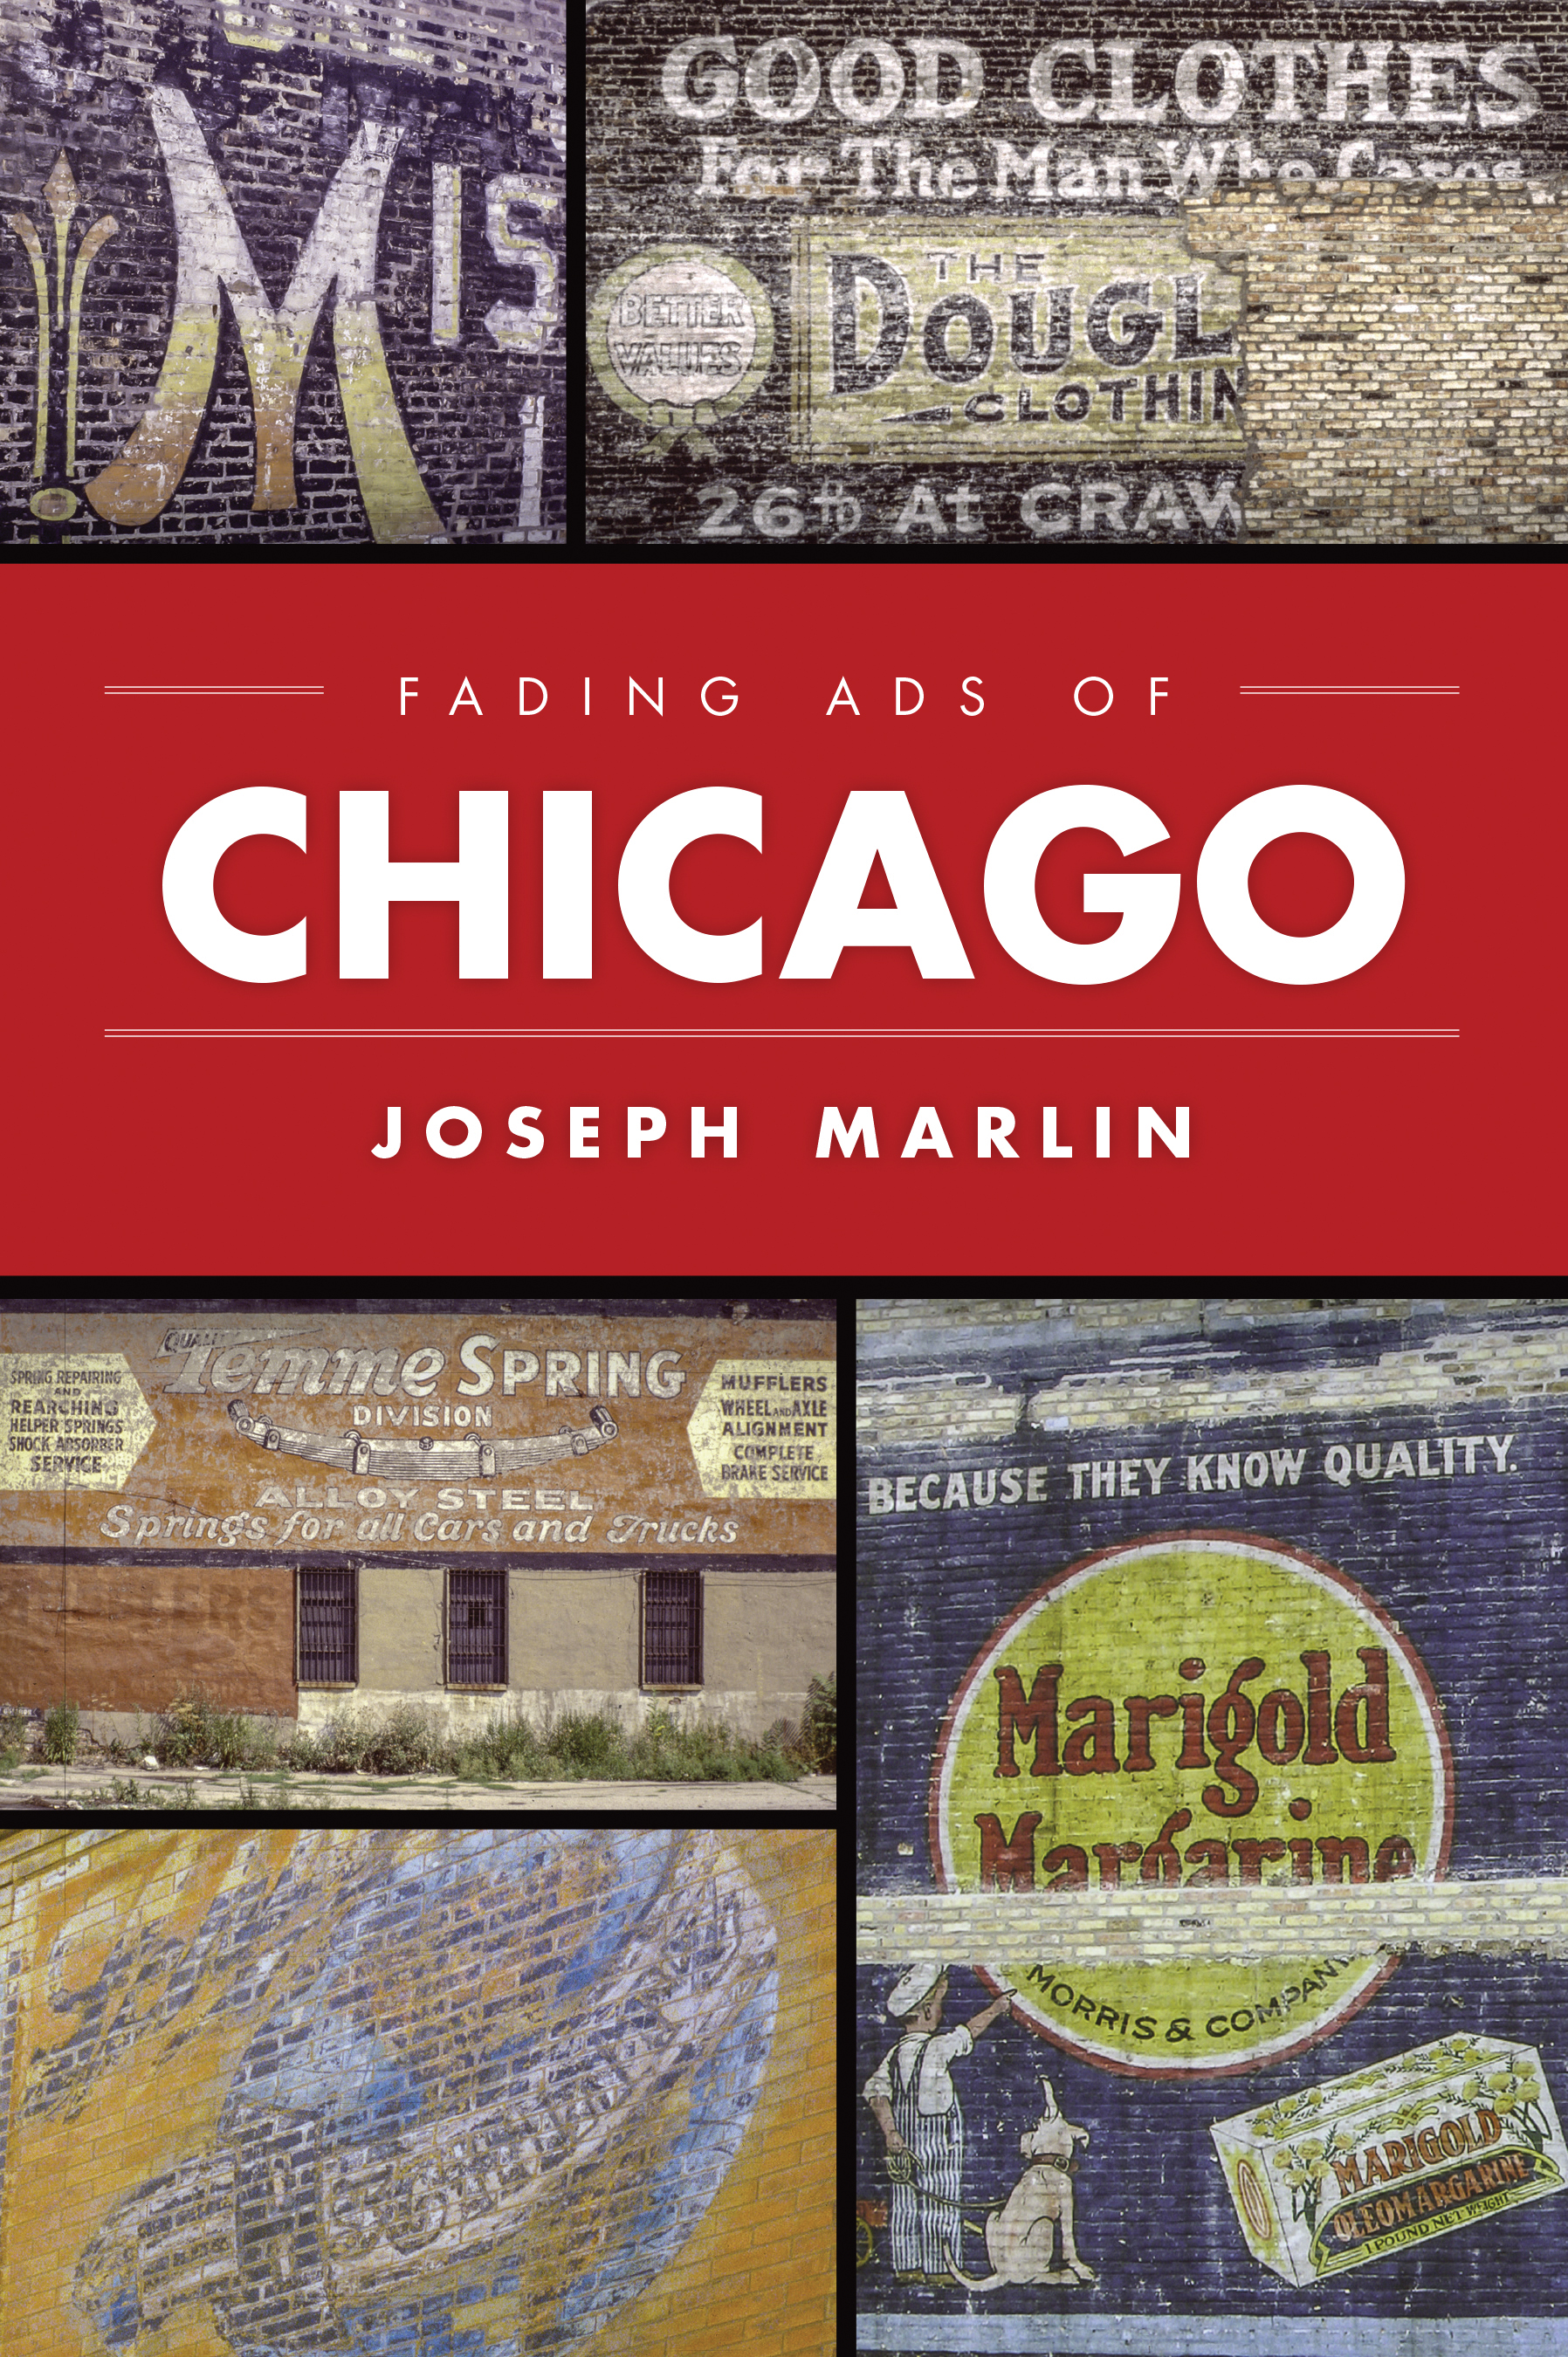 Fading Ads of Chicago